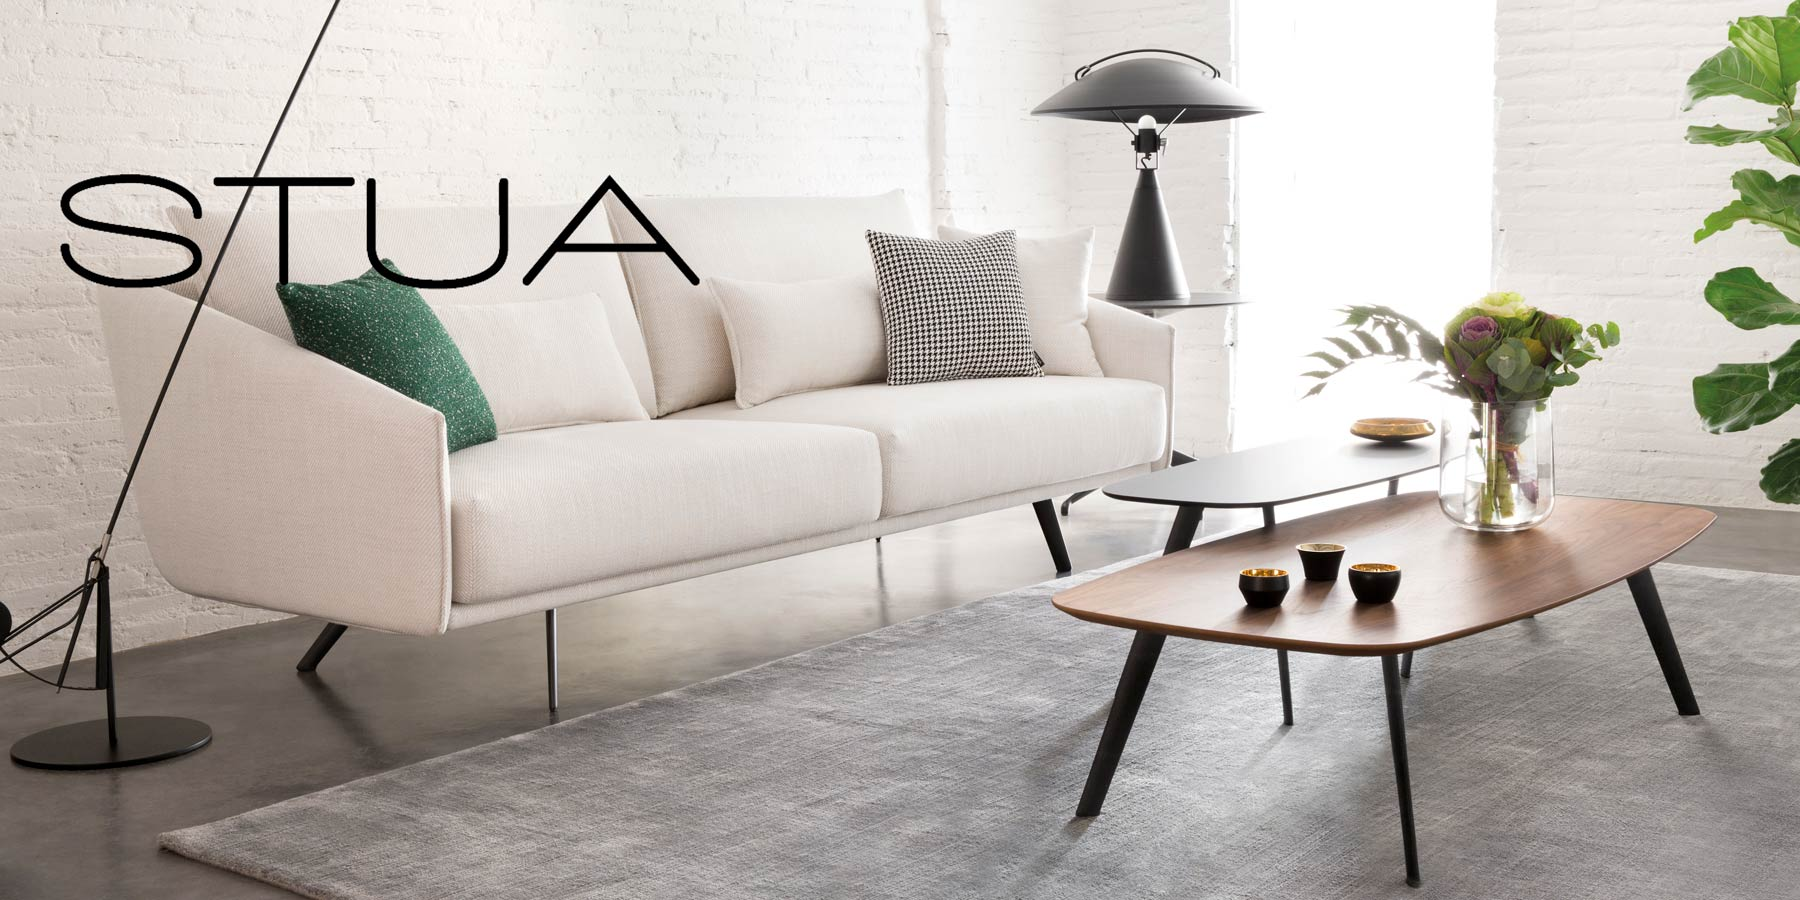 Stua Contemporary Furniture